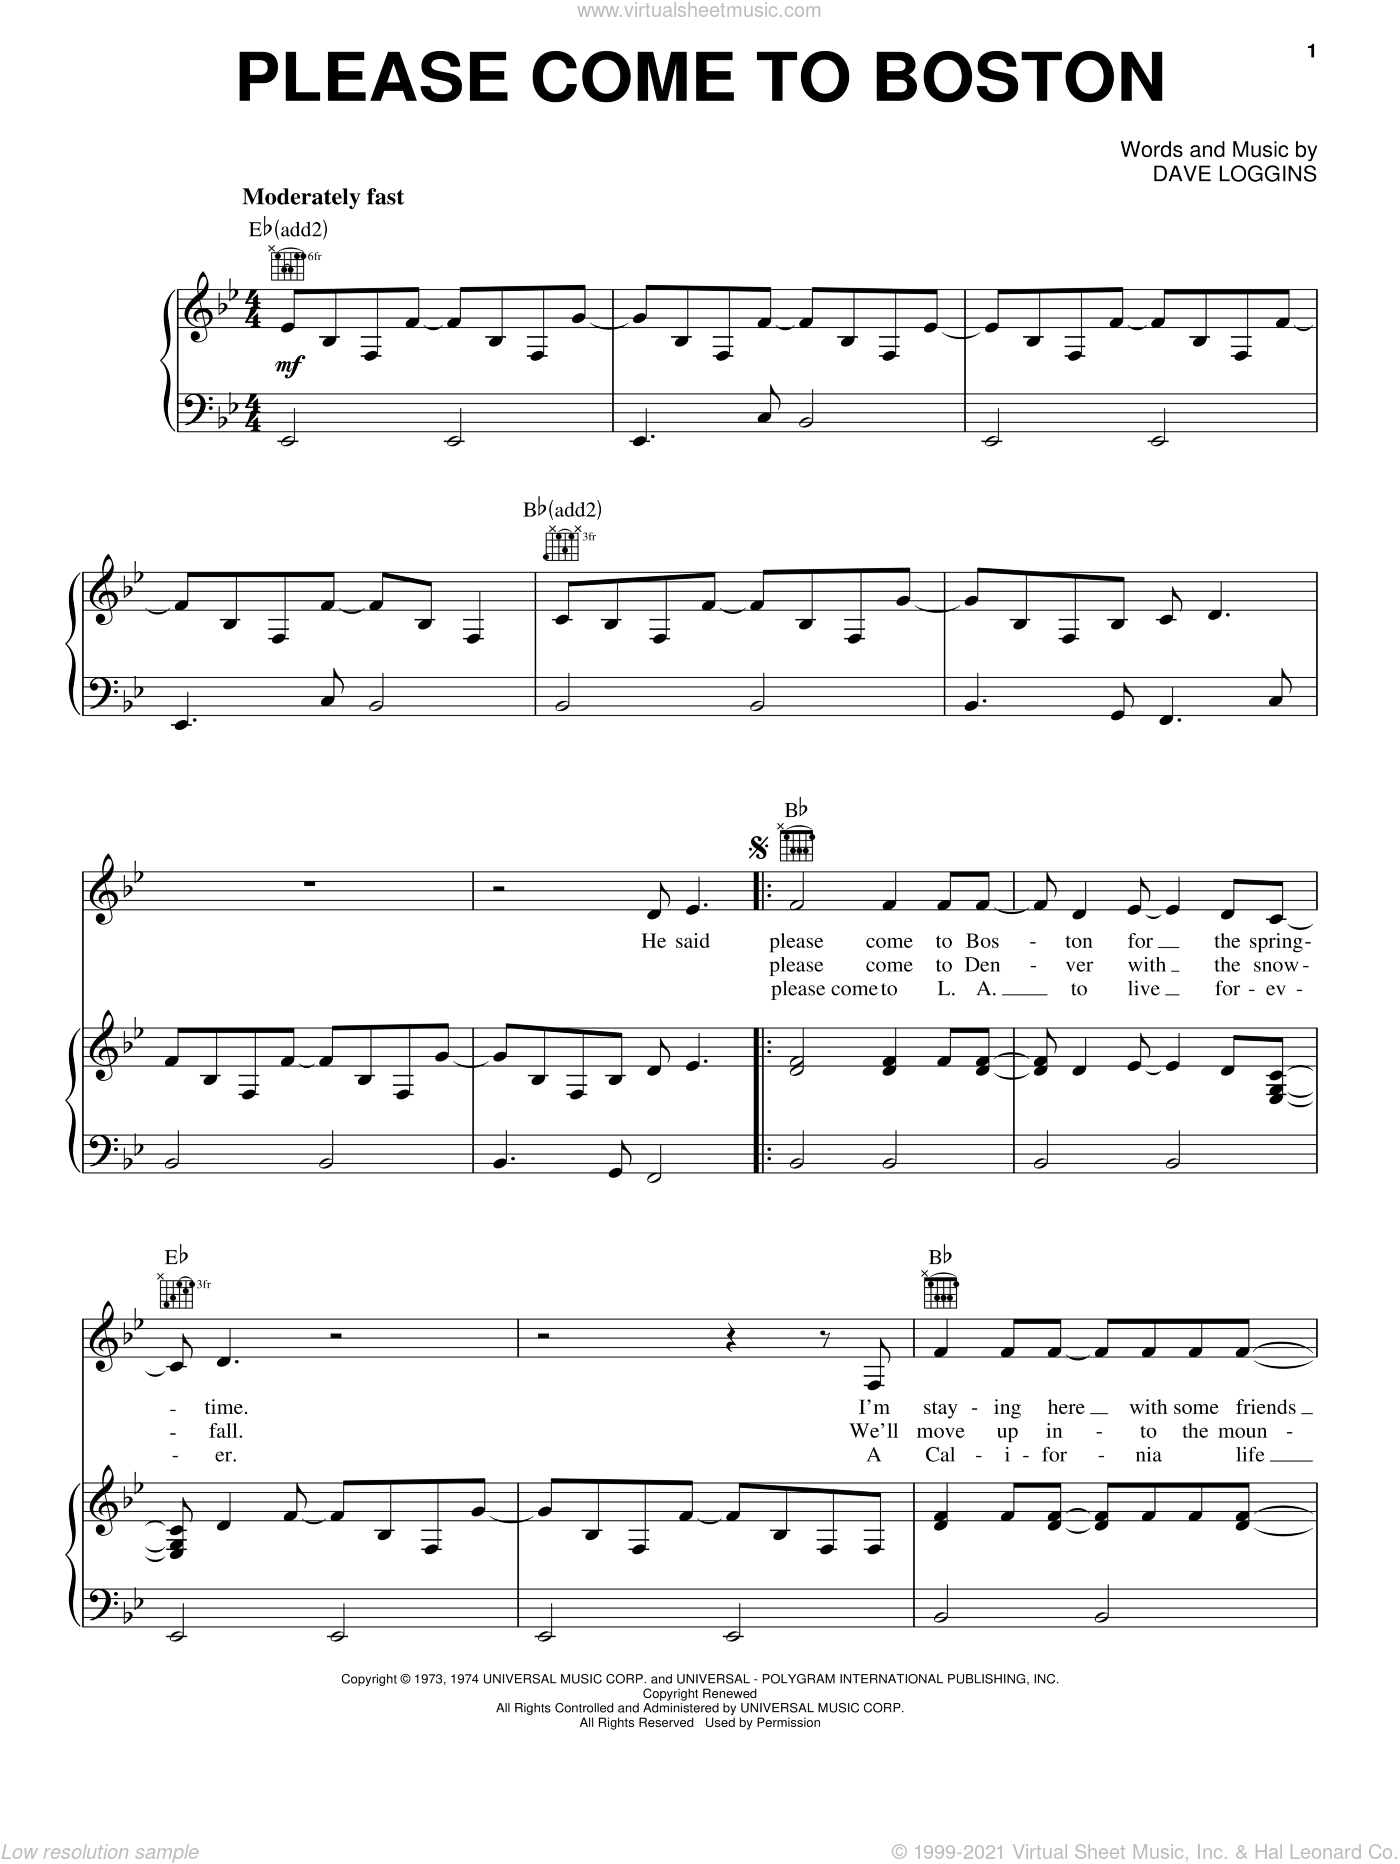 Please Come To Boston sheet music for voice, piano or guitar by Dave Loggins